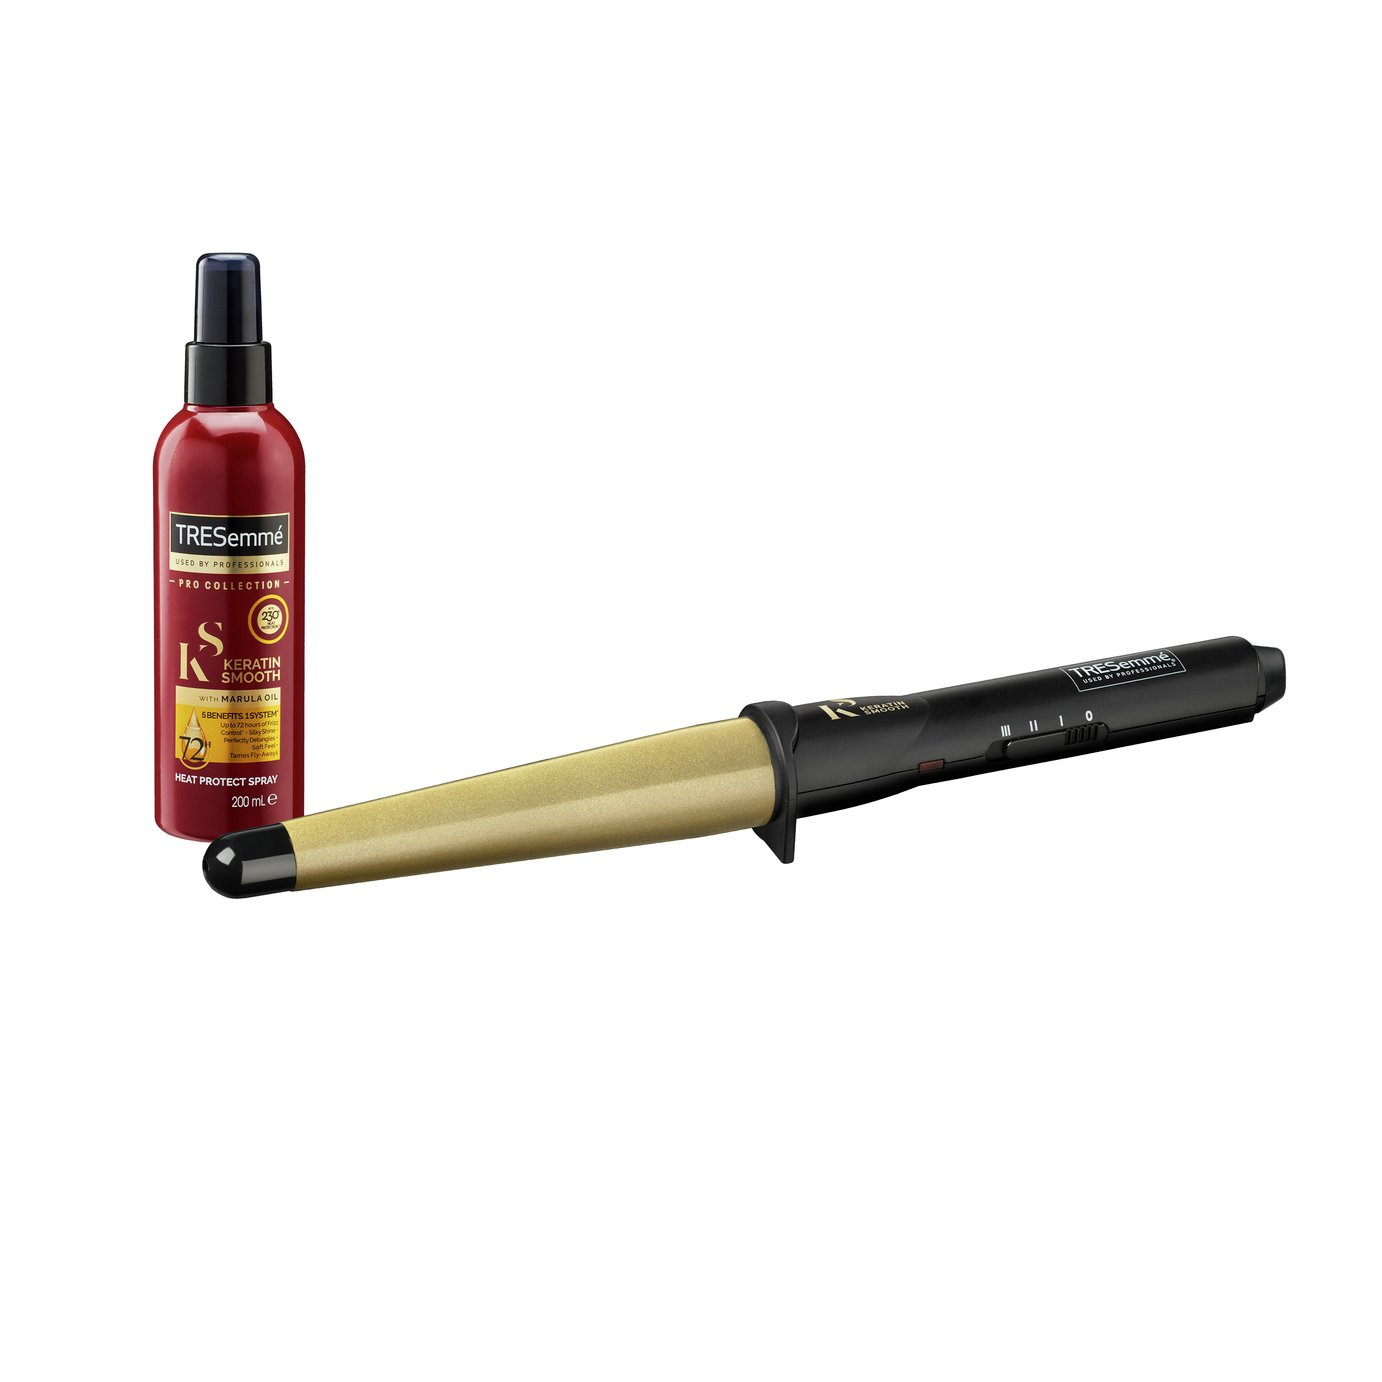 TRESemme 2804CU Keratin Smooth Salon Shine Waves Wand